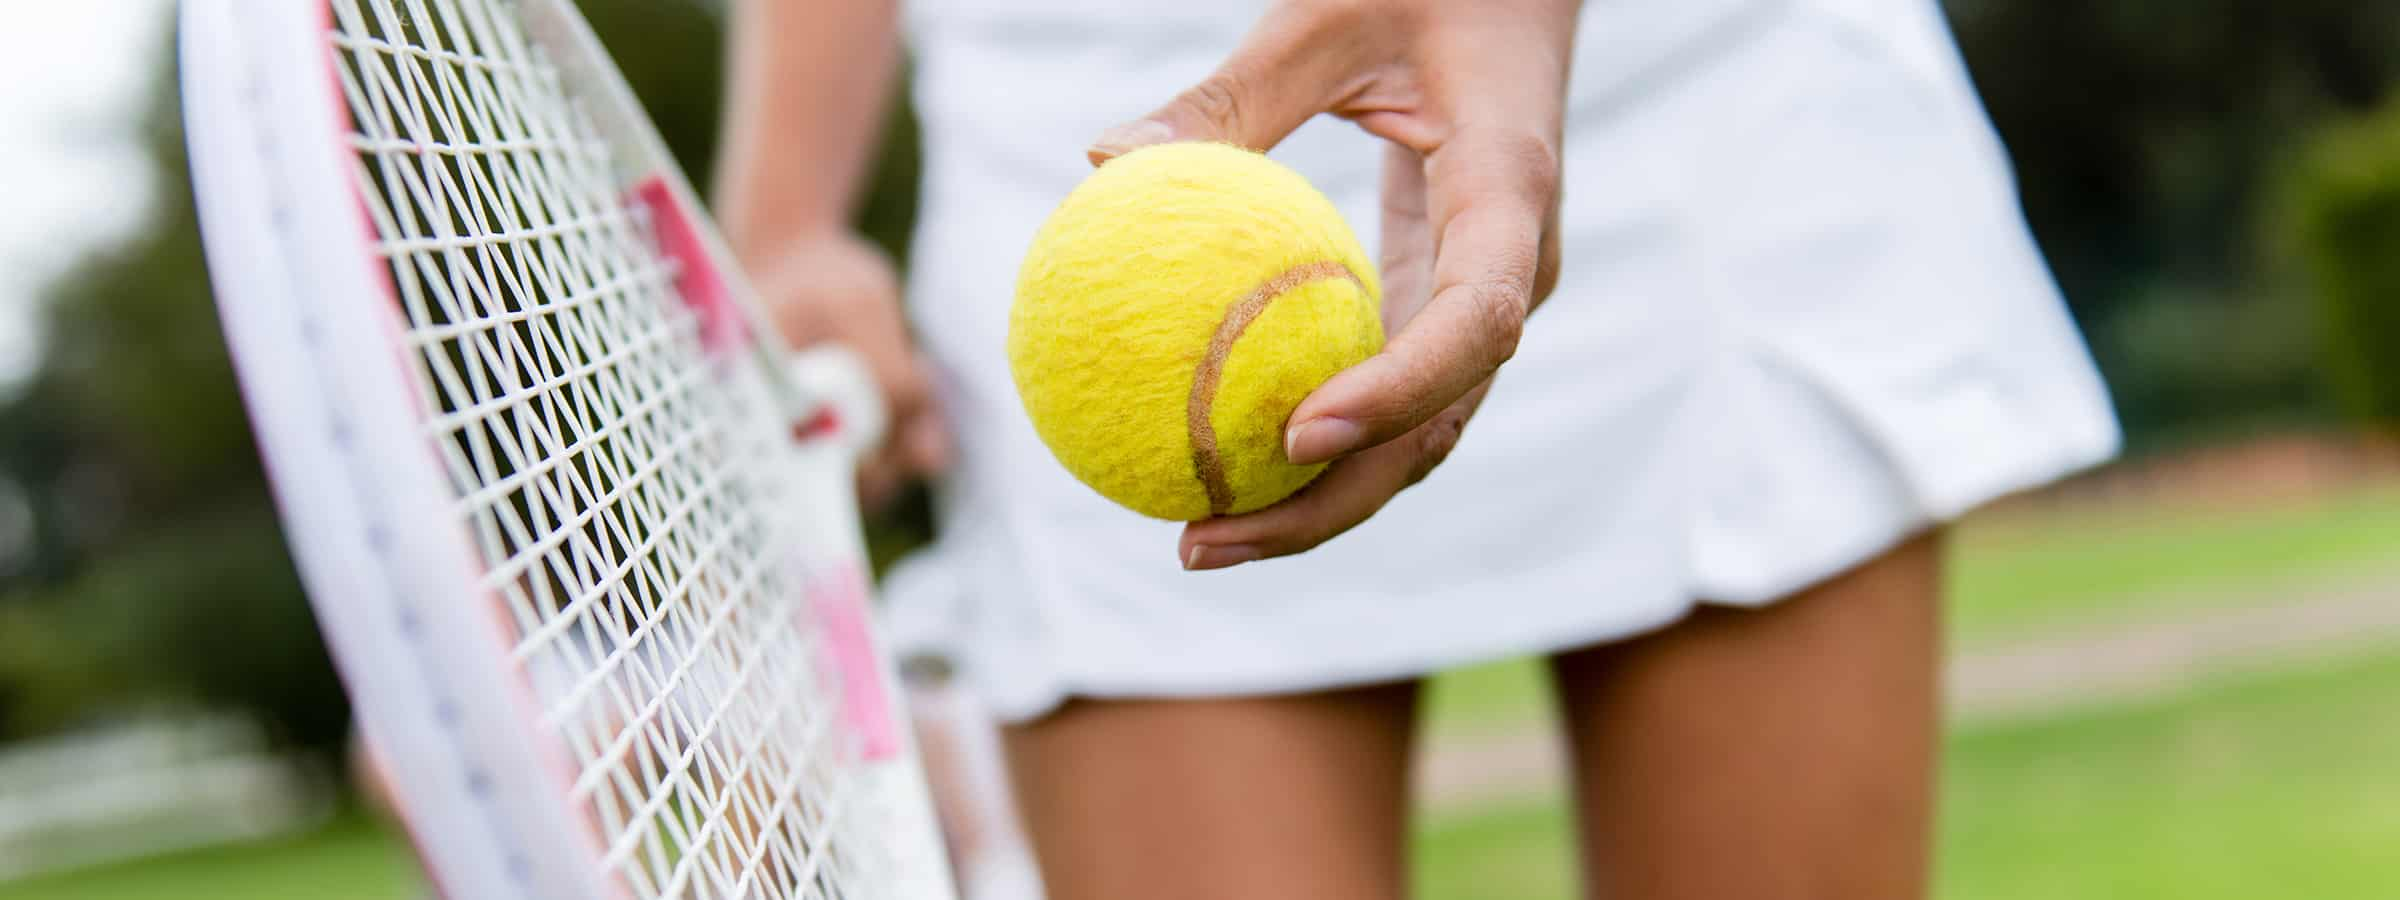 Woman holding tennis ball next to tennis racquet